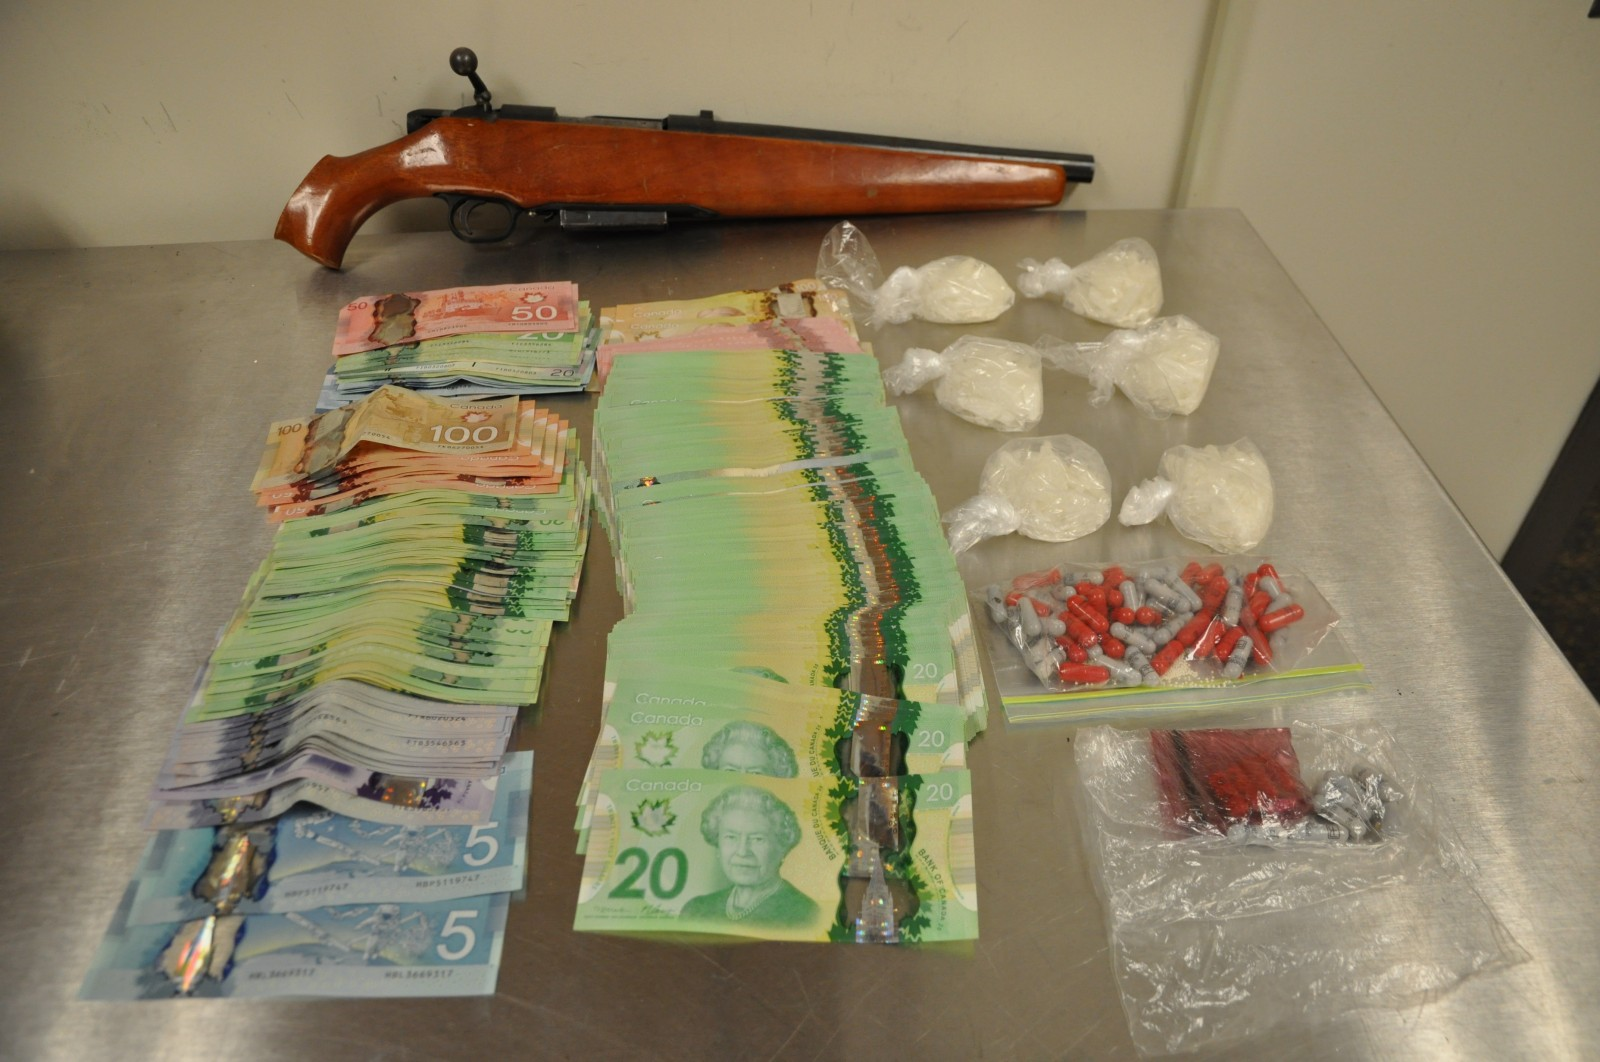 Drug bust nets a weapon, four charged